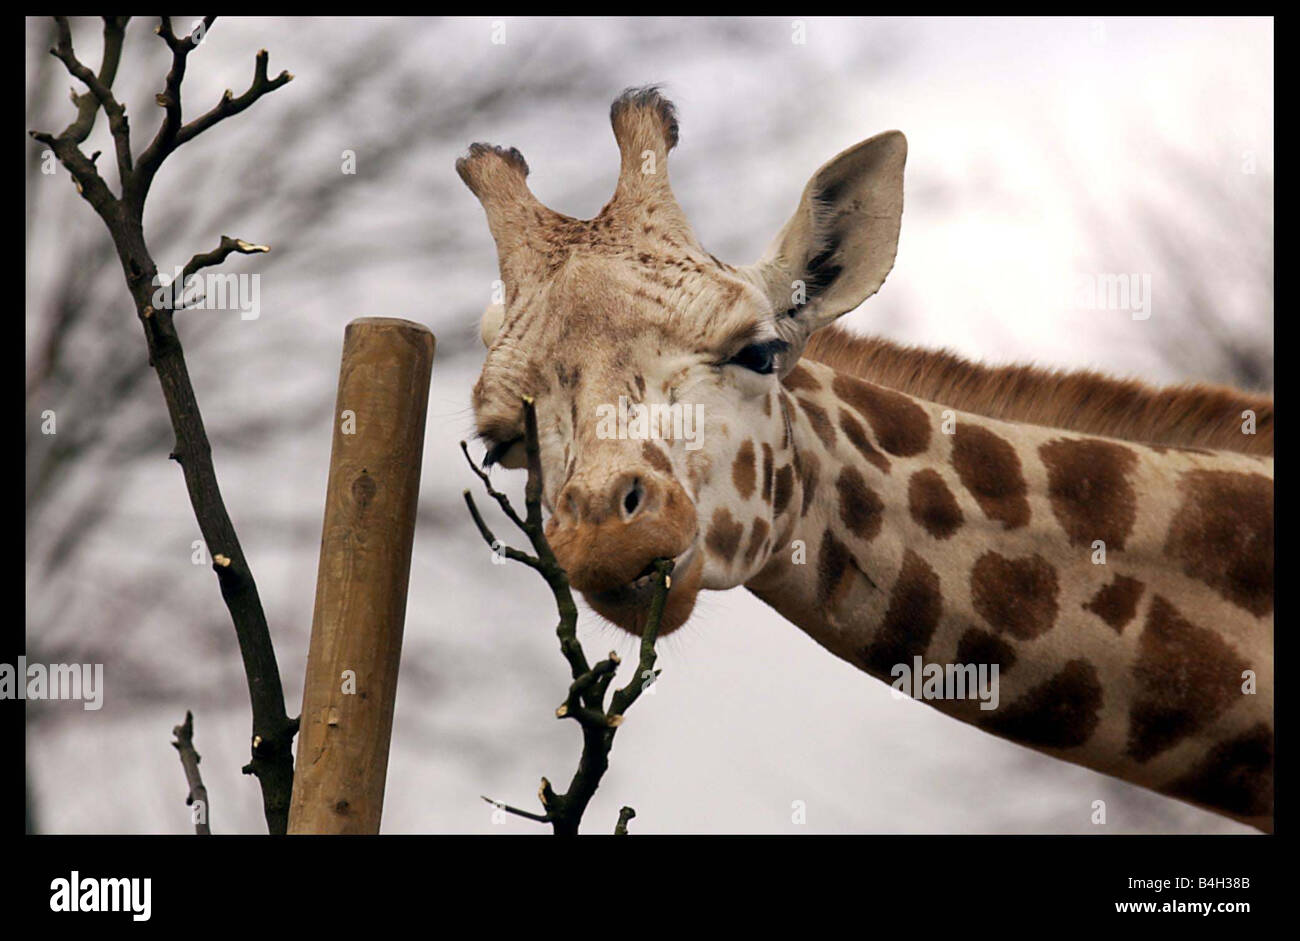 Sapphire the young giraffe at Edinburgh zoo February 2004 undergone a operation to repair a broken jaw after she - Stock Image